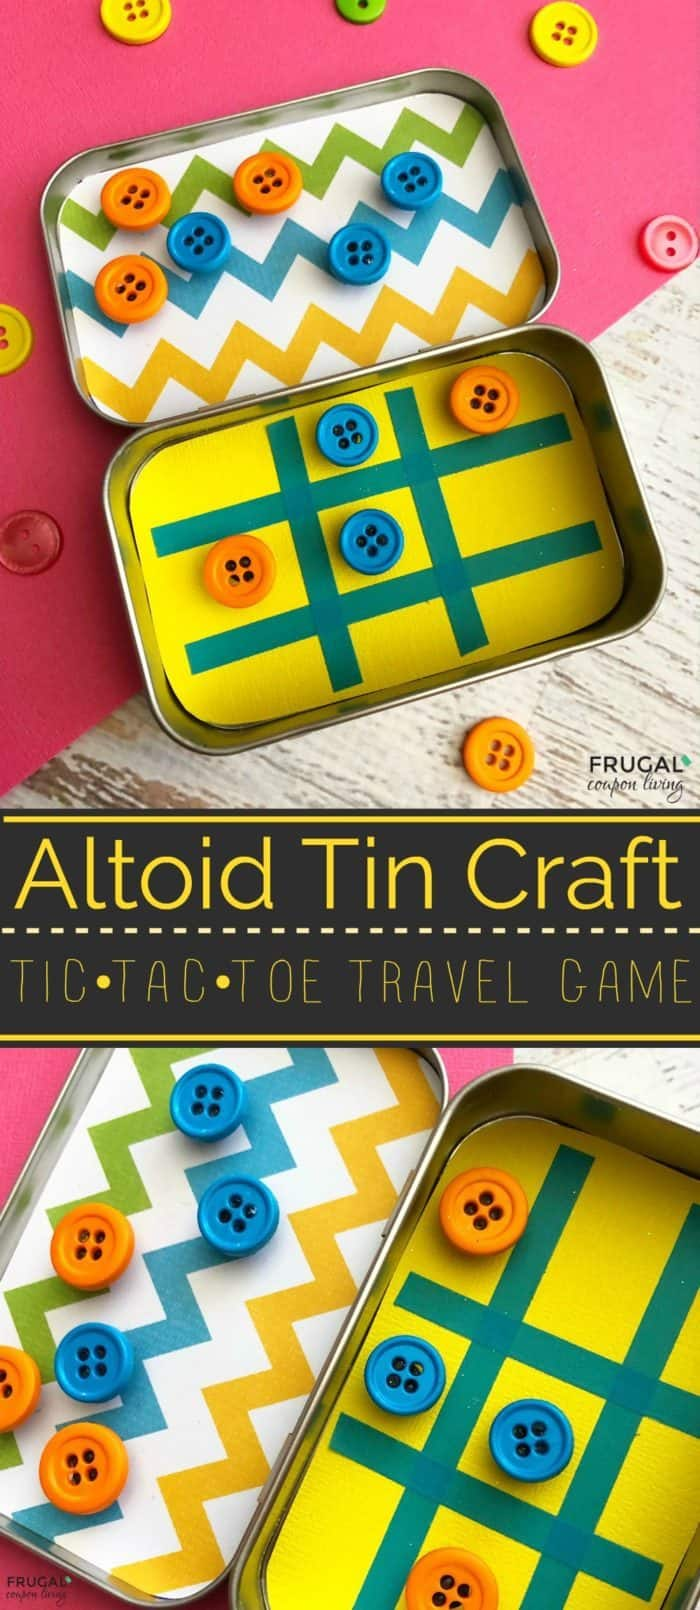 Altoid Tin Craft - Tic Tac Toe Travel Game